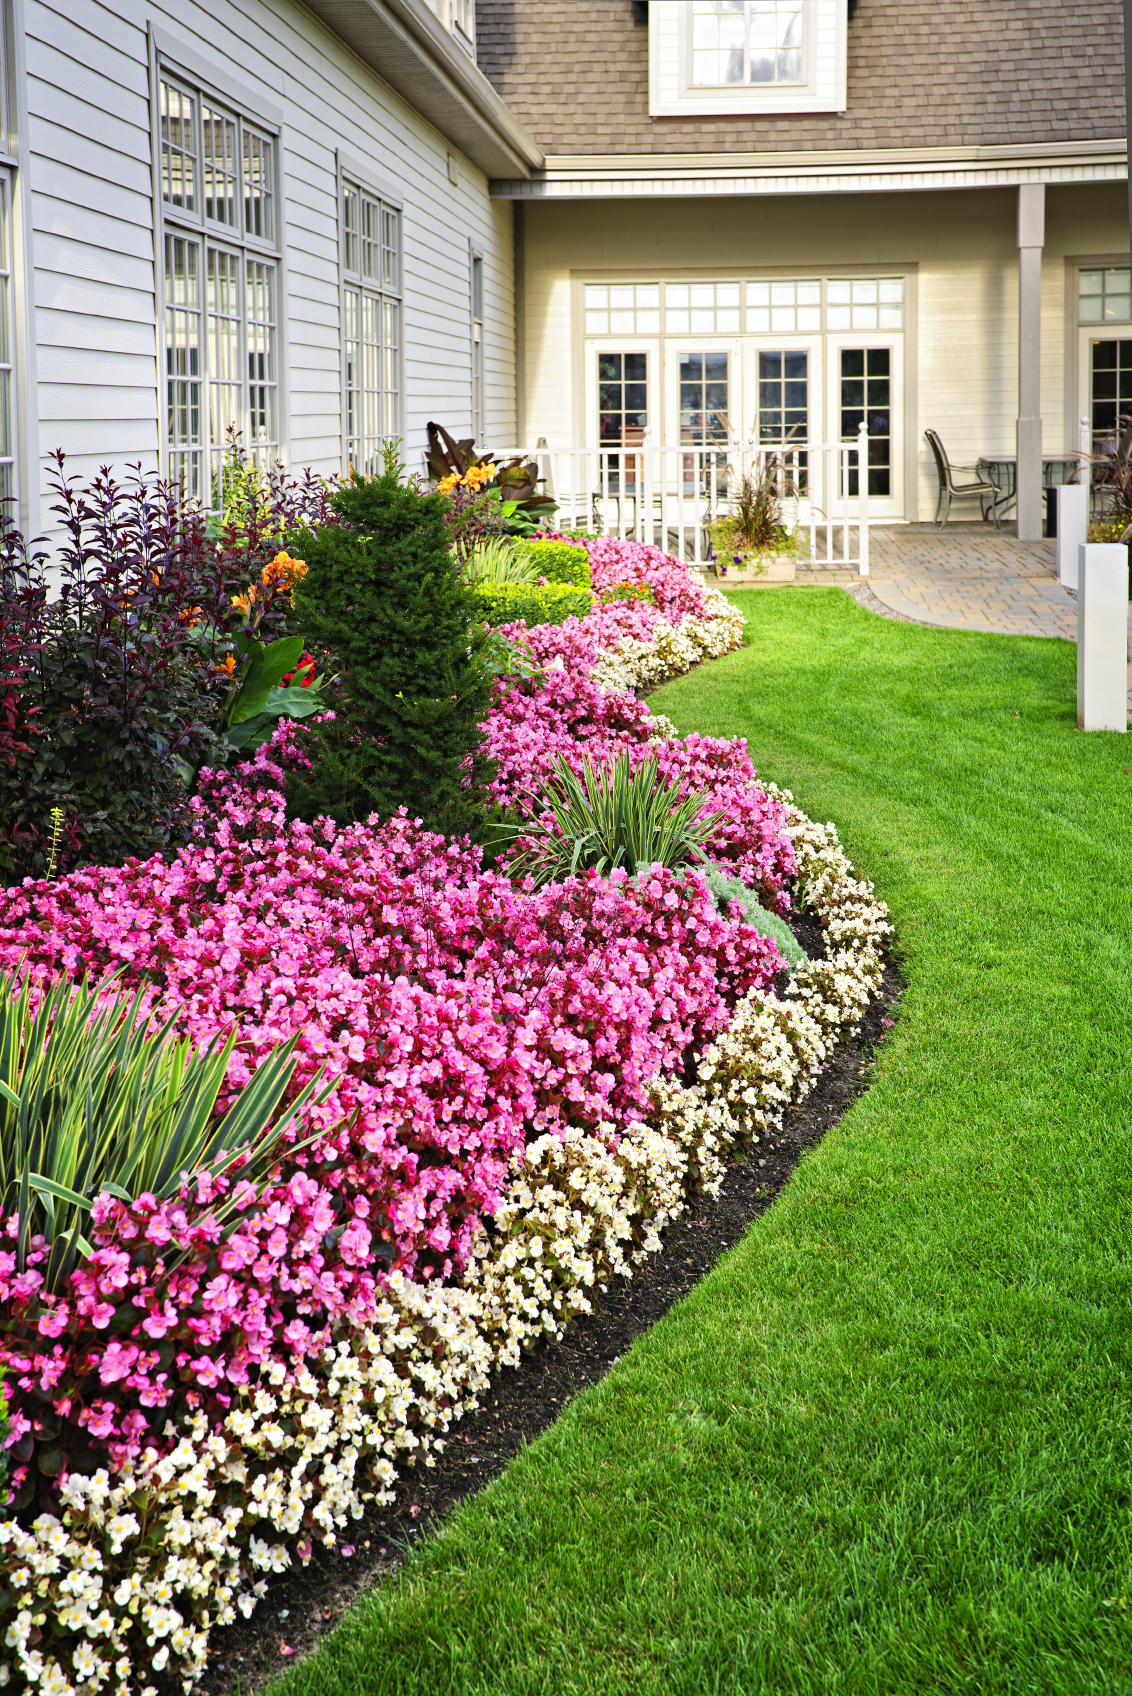 10 Inspirational Residential Landscaping Ideas To Make ... on Landscape Front Yard Ideas id=68846